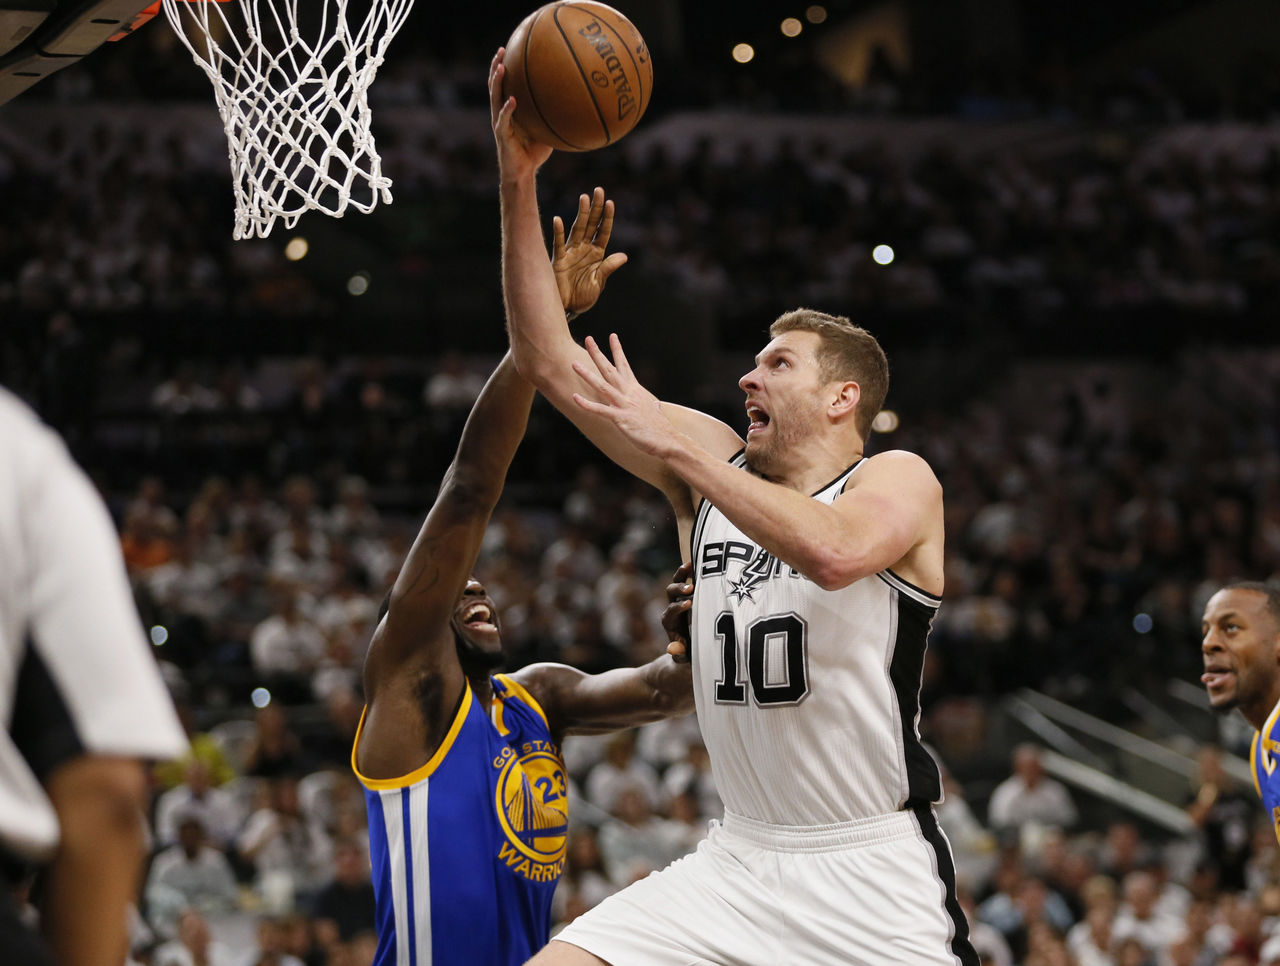 Cropped 2017 05 21t032714z 758153697 nocid rtrmadp 3 nba playoffs golden state warriors at san antonio spurs